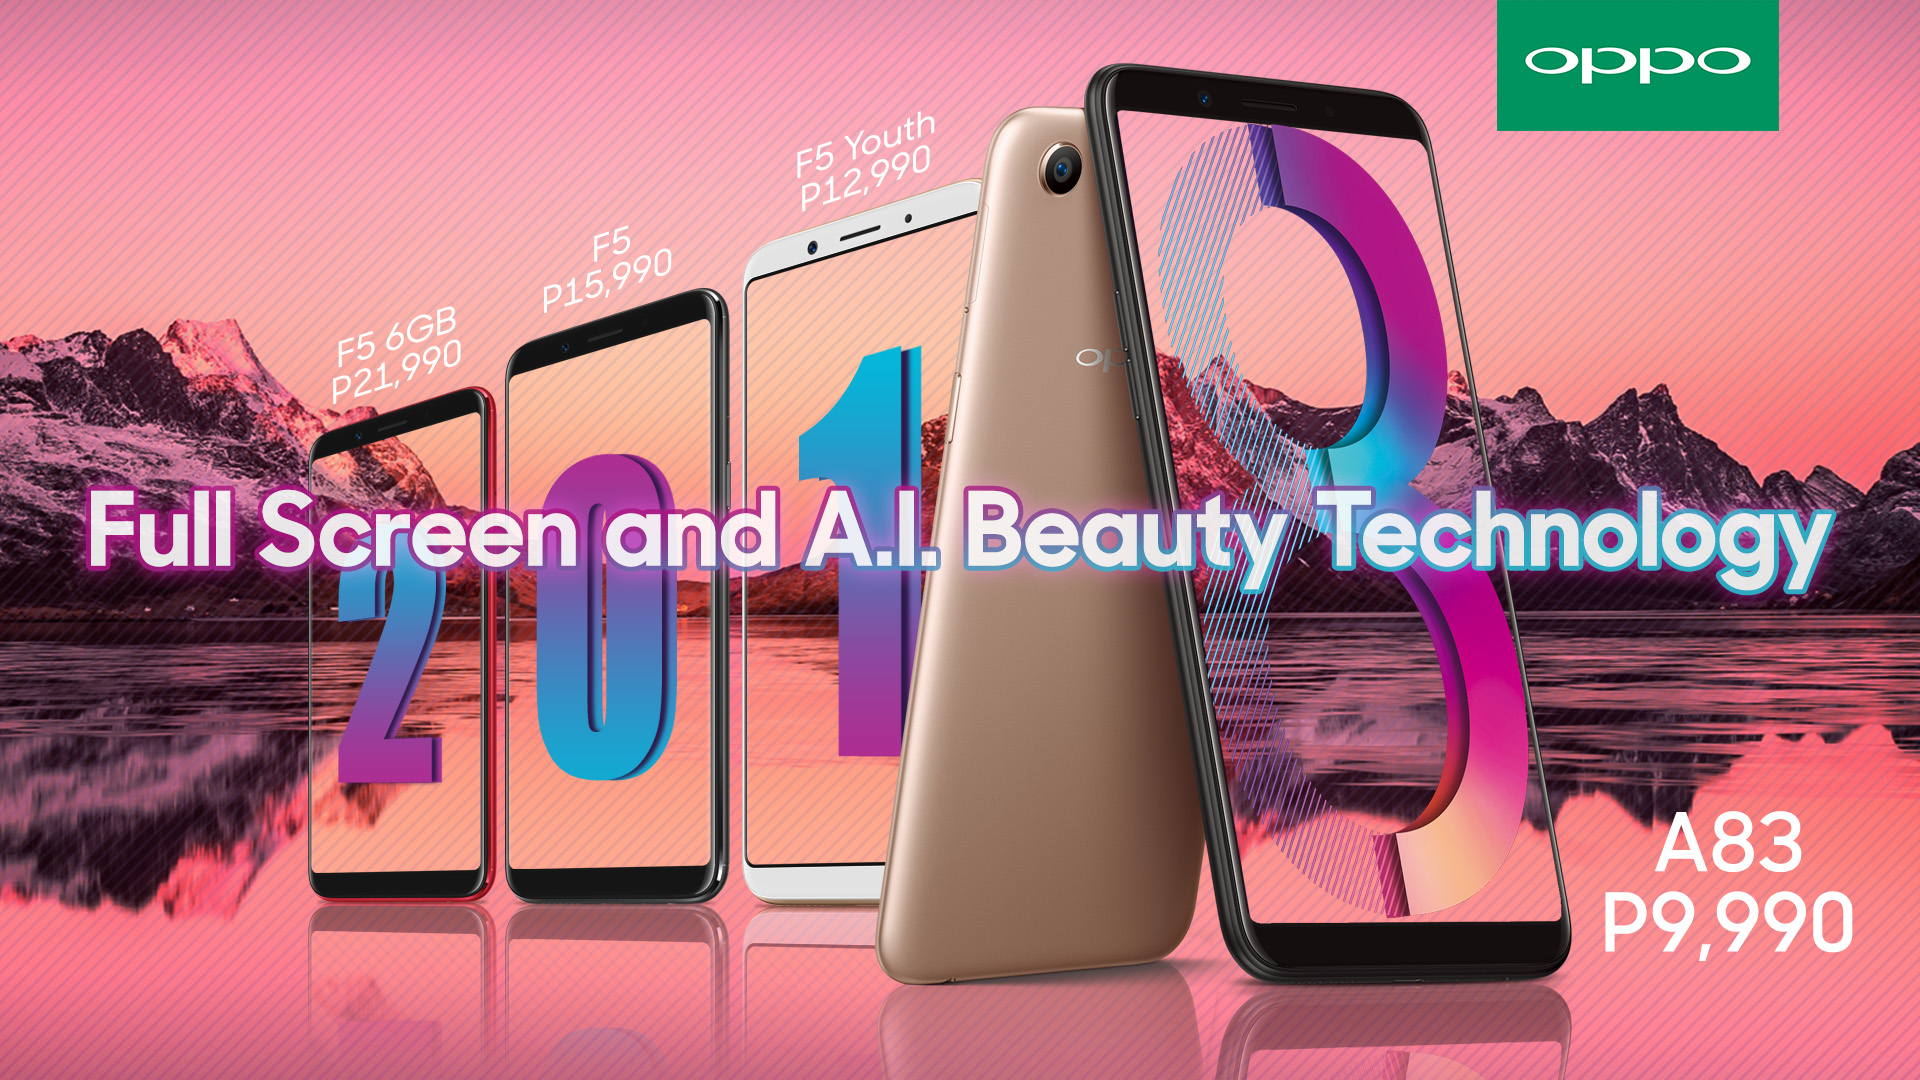 OPPO FullScreen and AI family - OPPO A83 Now Available From Home Credit!